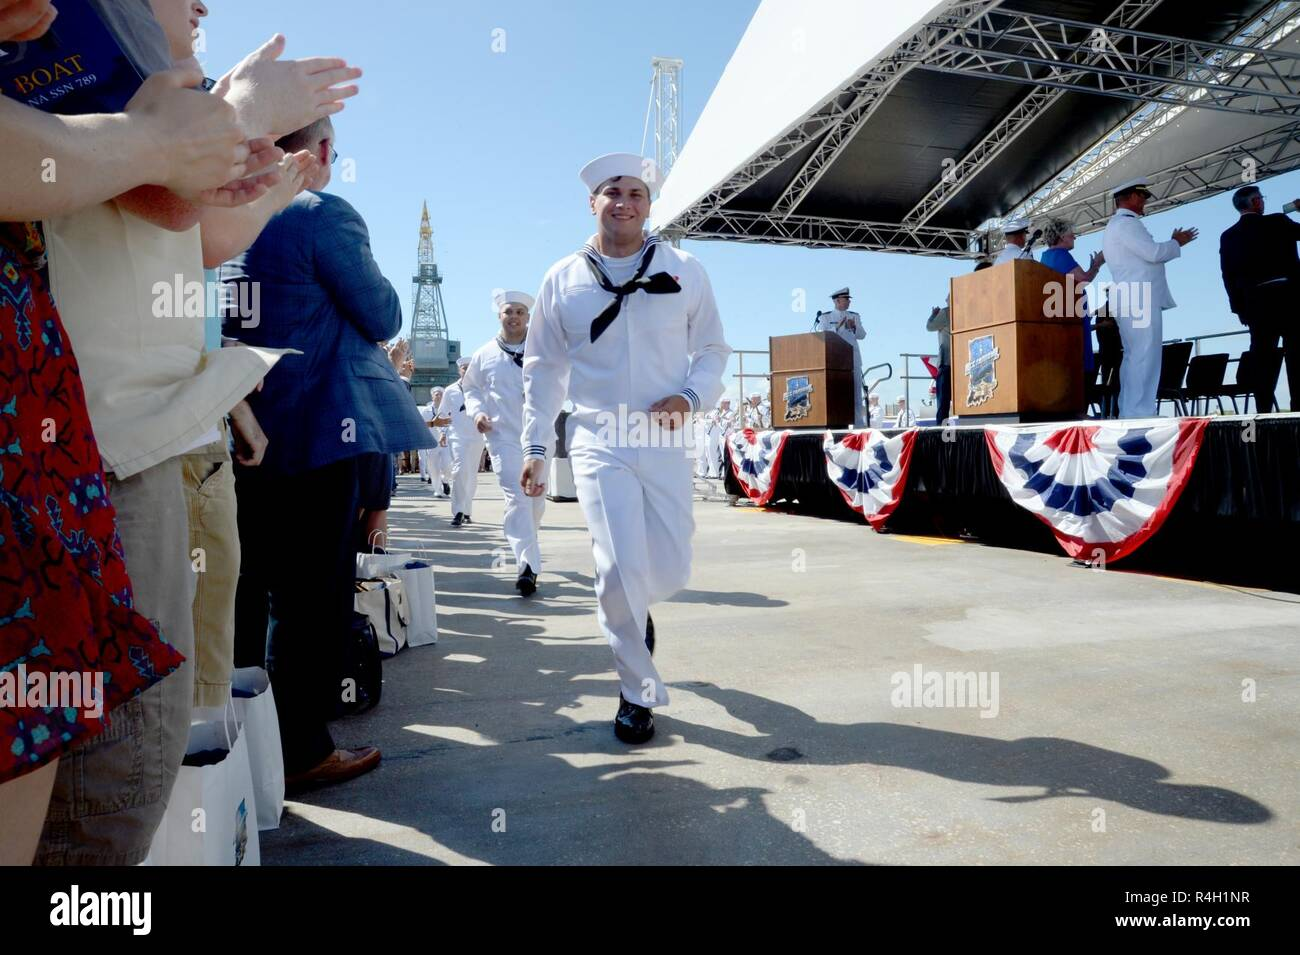 PORT CANAVERAL, Fla. (Sept. 29, 2018) Ms. Diane K. Donald announces 'Bring the Ship to Life' spurring its crew members to race across the brow and fall in formation aboard USS Indiana (SSN 789) during the commissioning ceremony Indiana is the U.S. Navy's 16th Virginia-class fast-attack submarine and the third ship named for the State of Indiana. - Stock Image